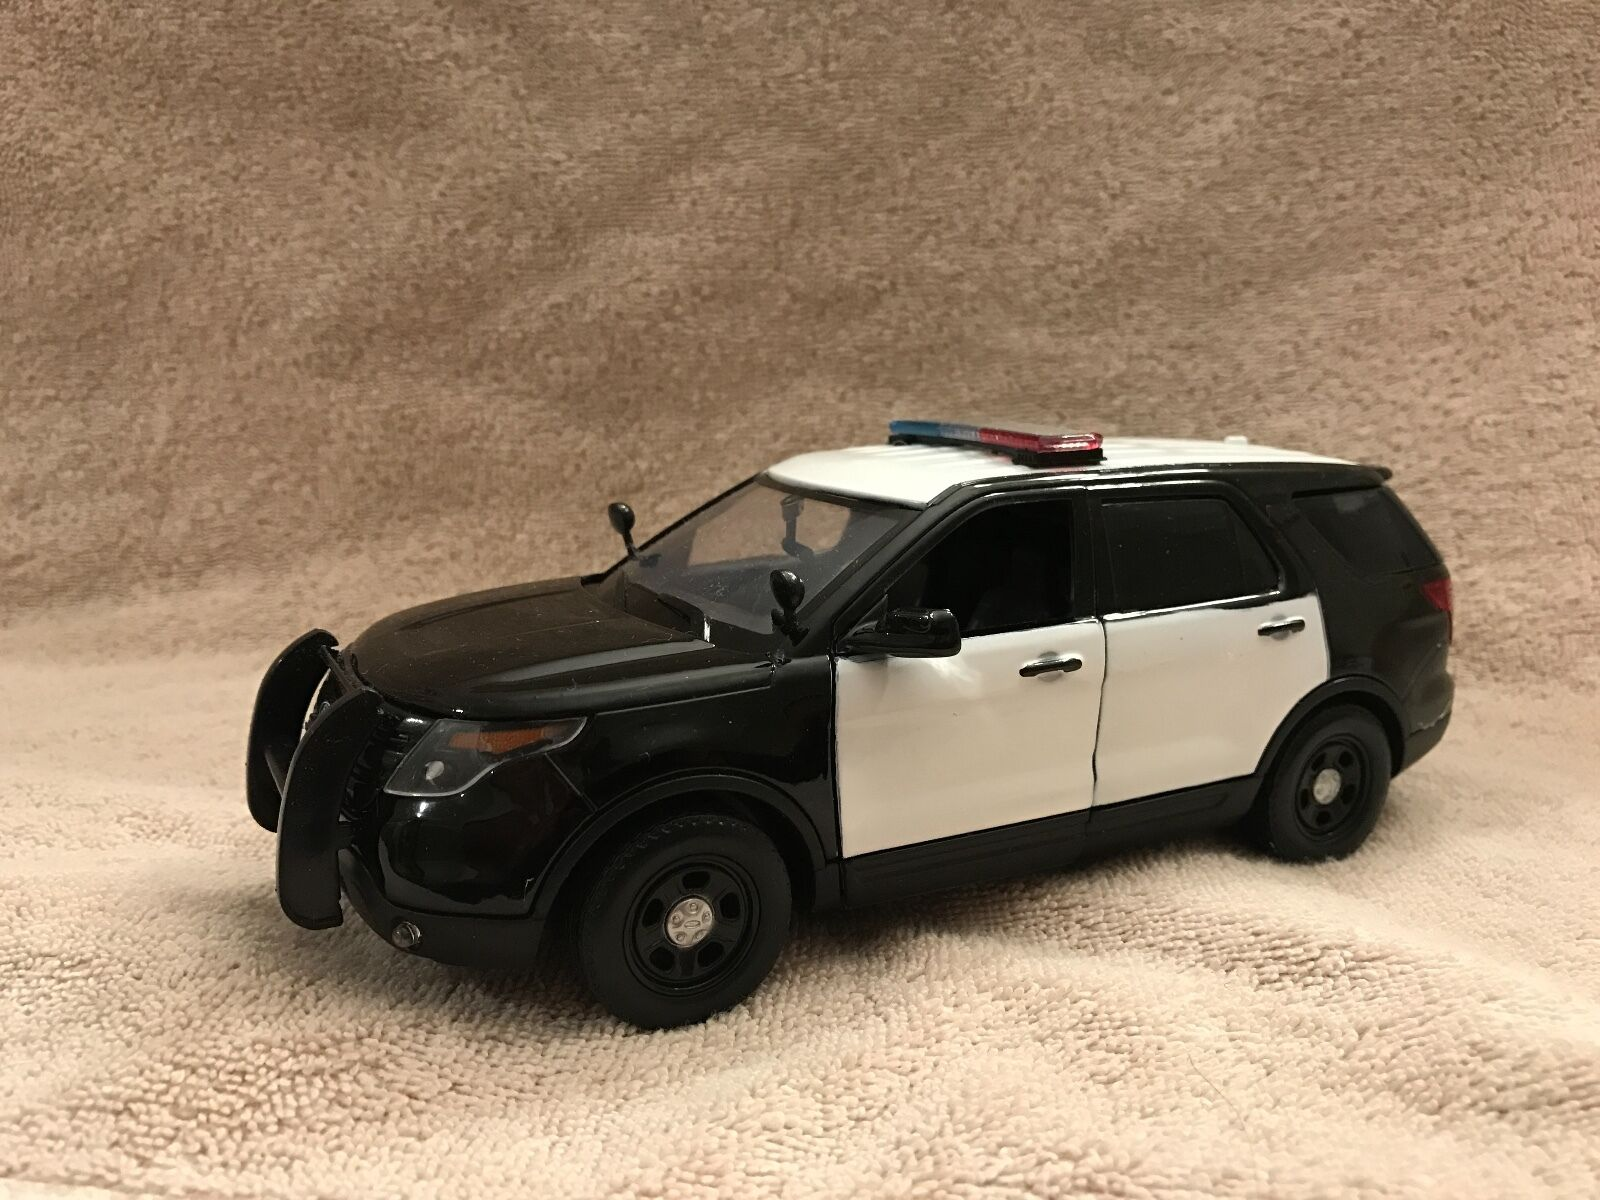 1/24 SCALE BK/bianca  POLICE FORD EXPLORER  BLANK WITH WORKING LIGHTS AND SIREN